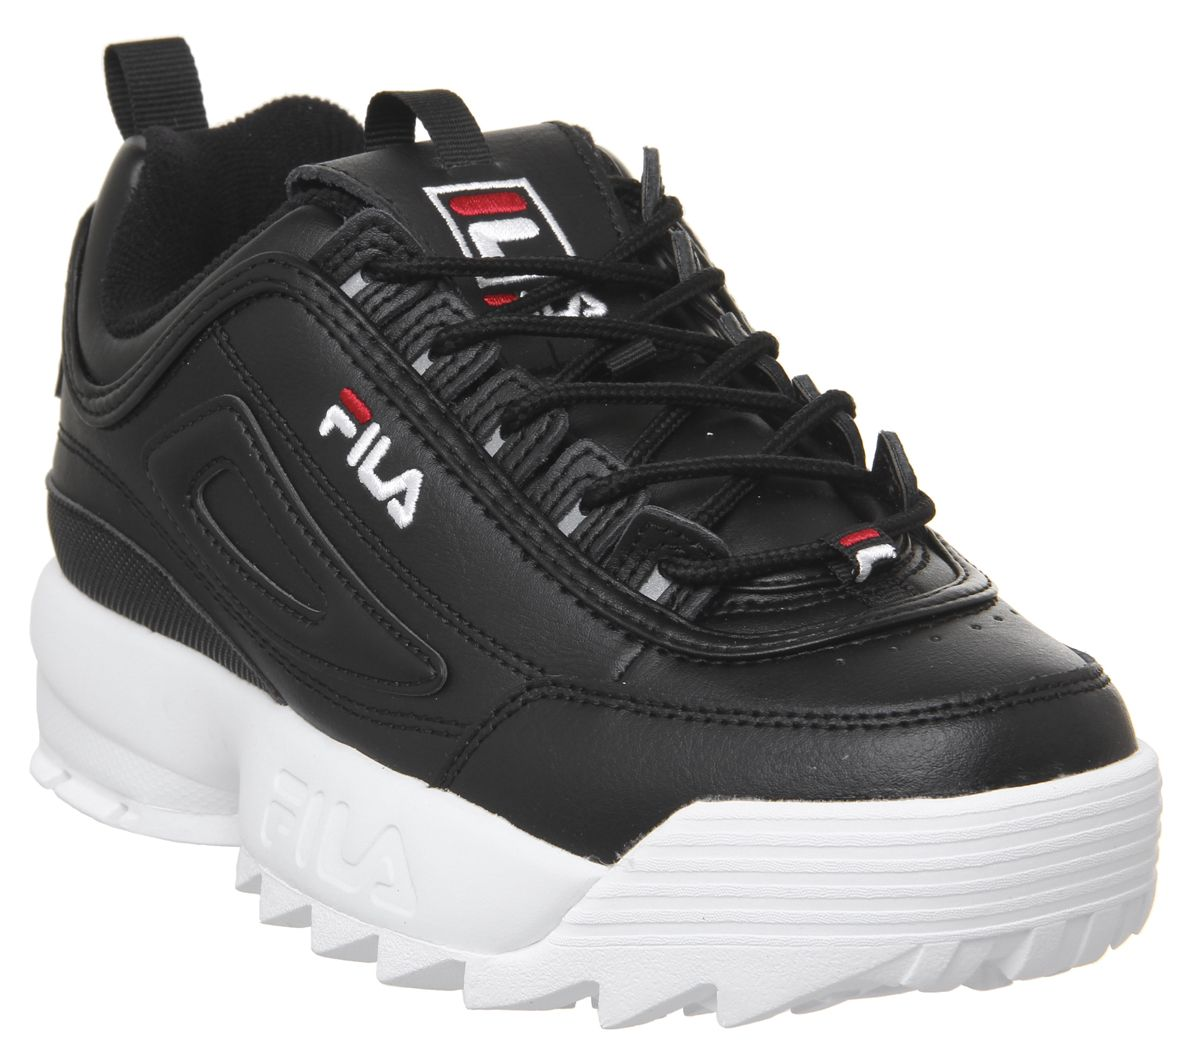 Details about Womens Fila Disruptor Ii Trainers Black White Trainers Shoes